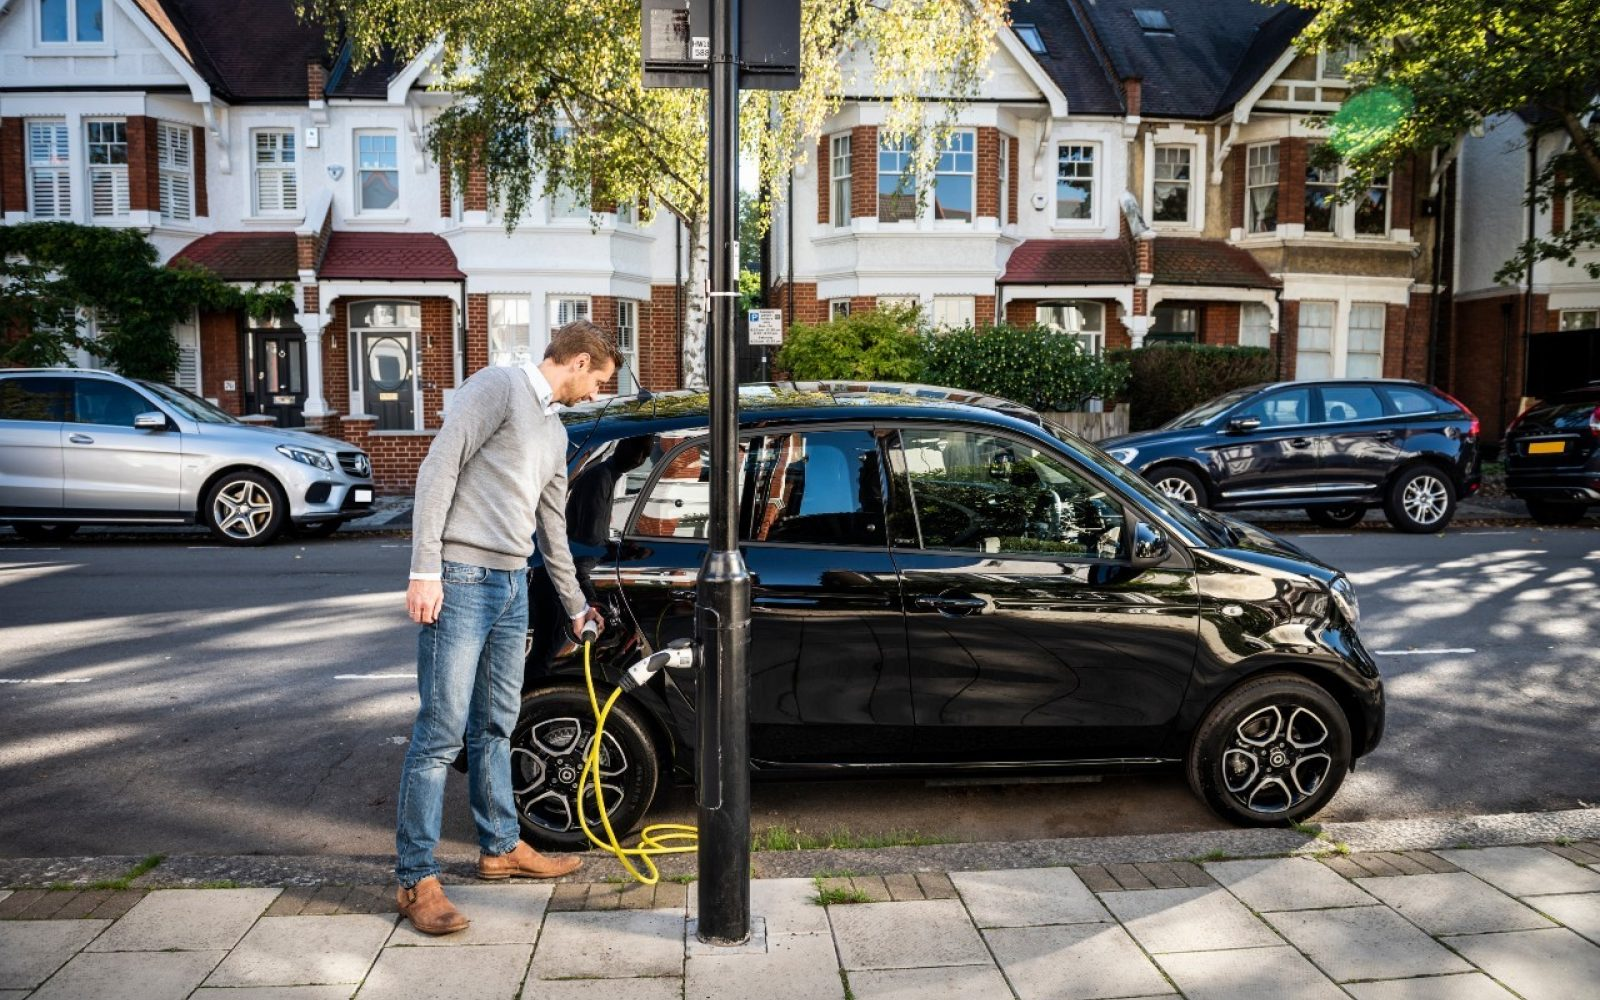 The CMA study is now to focus more heavily on on-street chargers such as this ubitricity lamppost chargers, as well as rapid charging. Image: Shell.